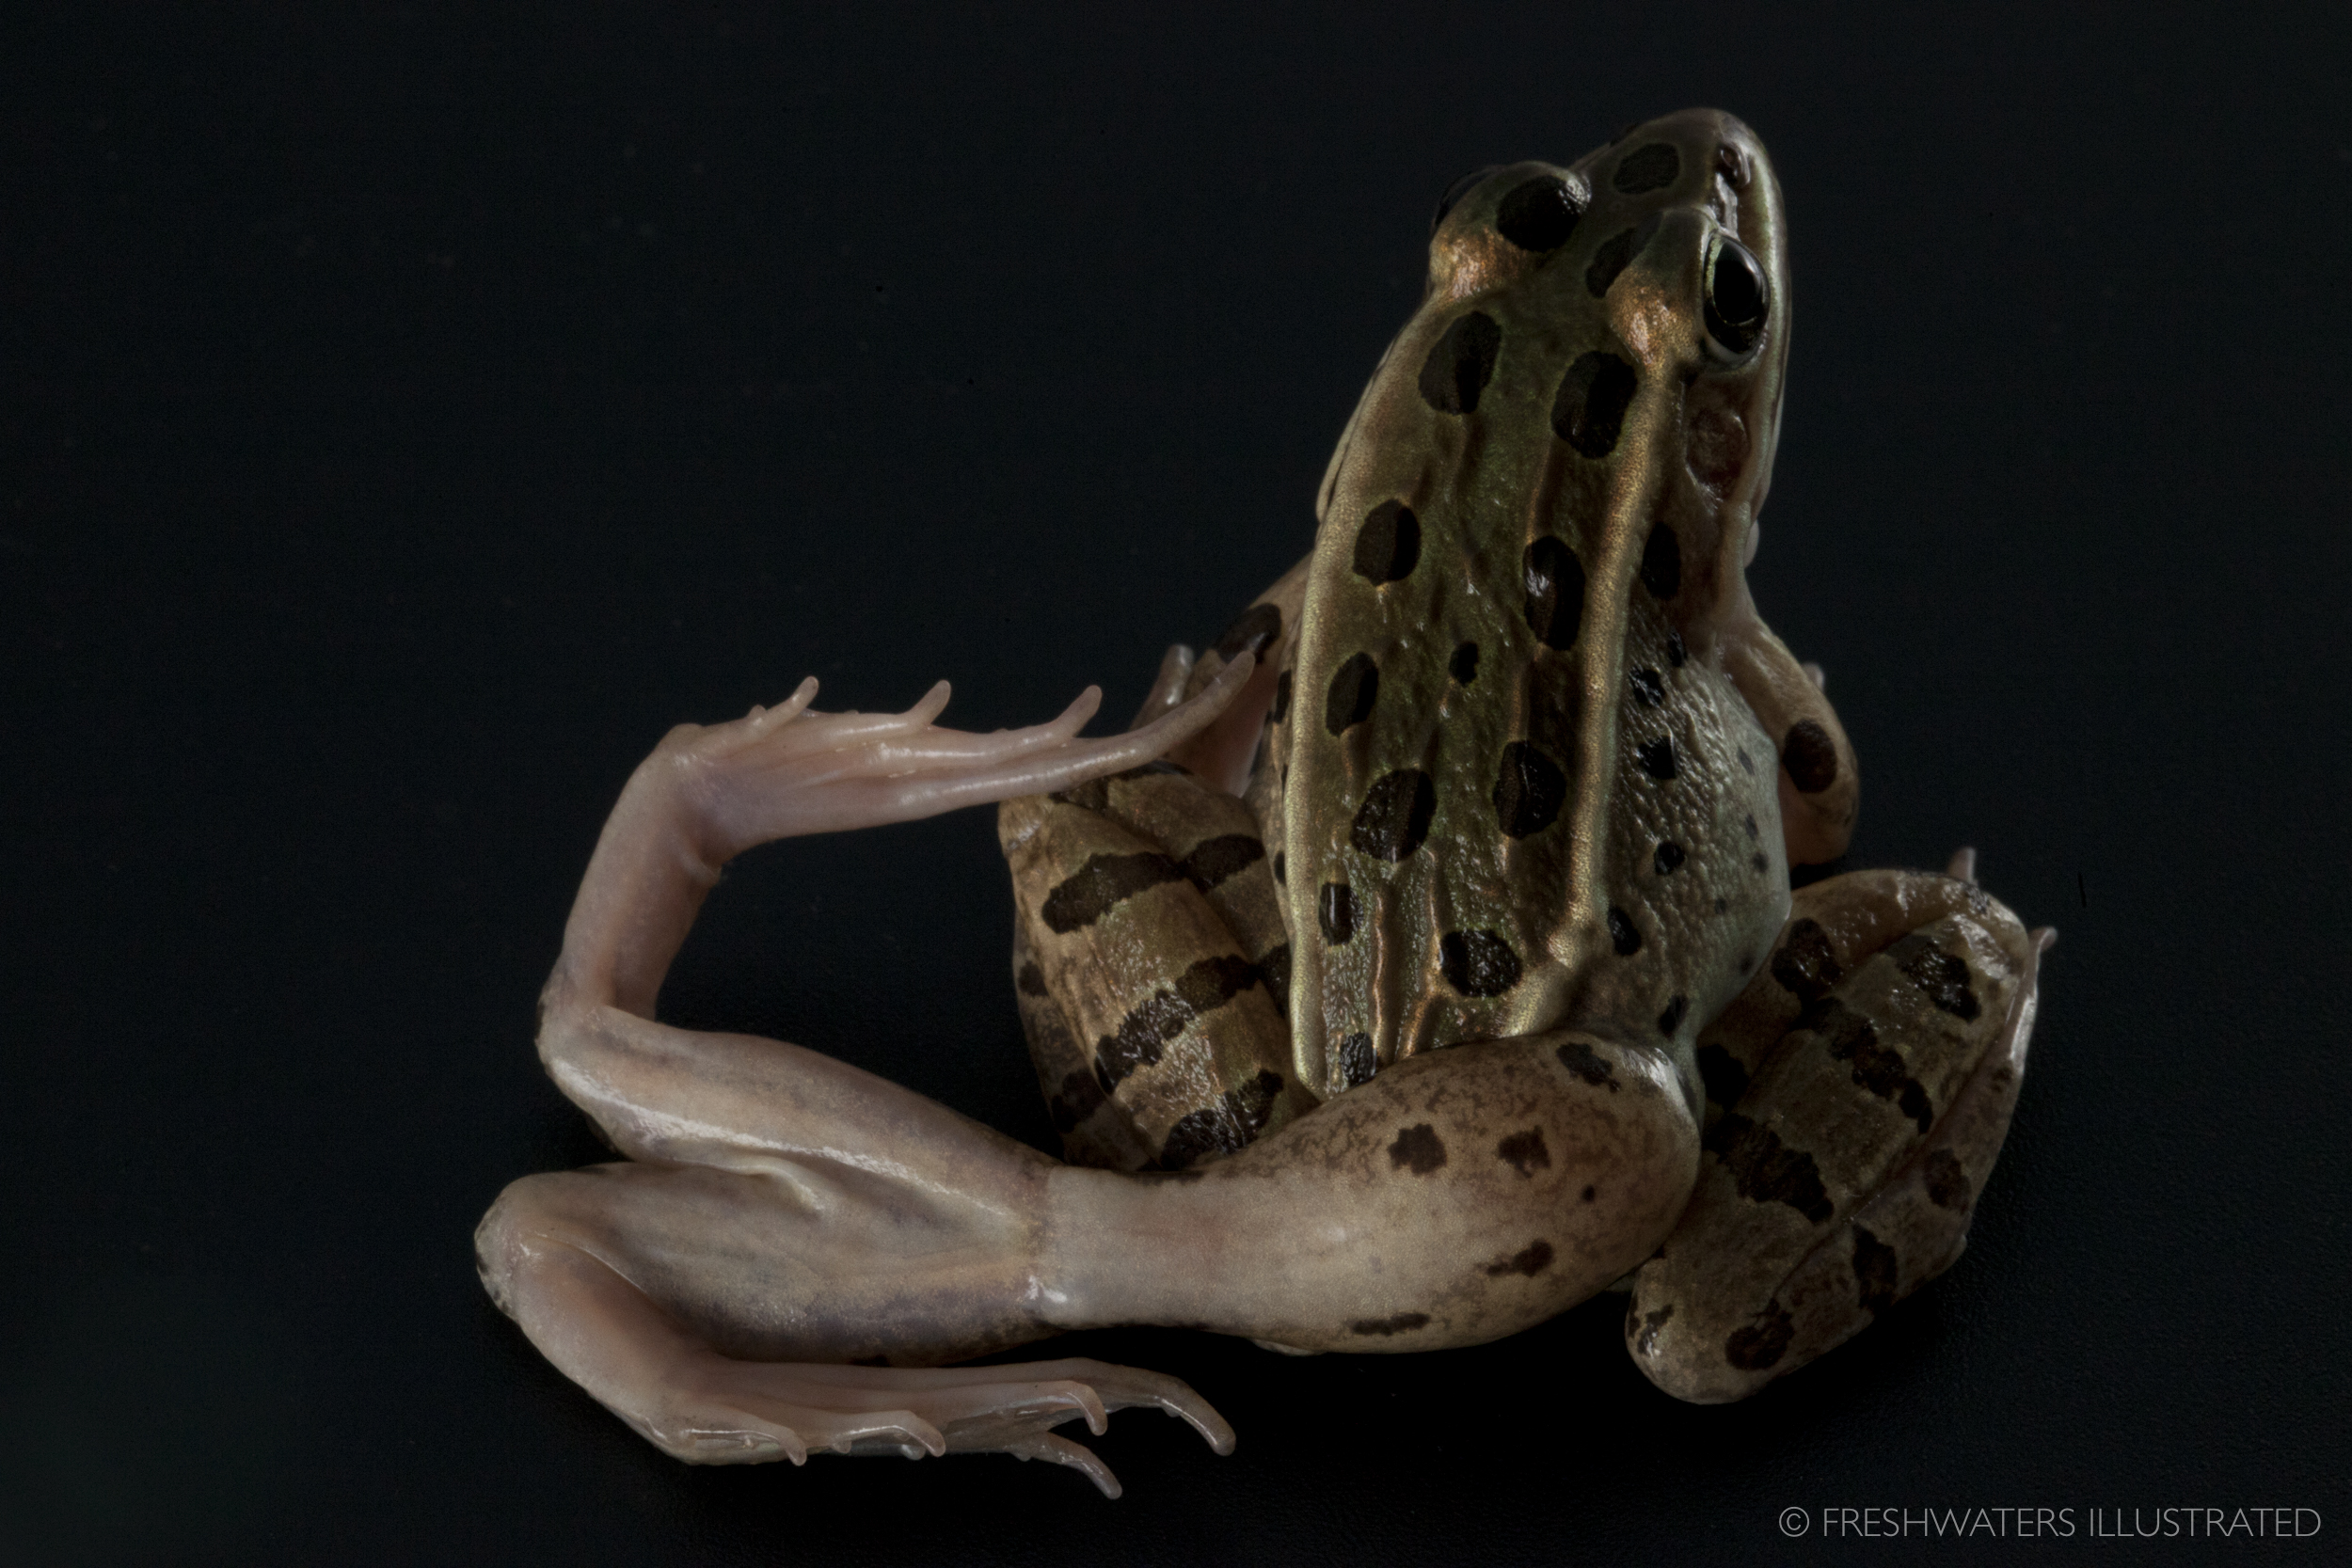 A Northern leopard frog with limb deformities caused by a parasitic flatworm. Current work by Dr. Pieter Johnson from the University of Colorado Boulder is trying to understand the factors that drive these malformations.  www.FreshwatersIllustrated.org